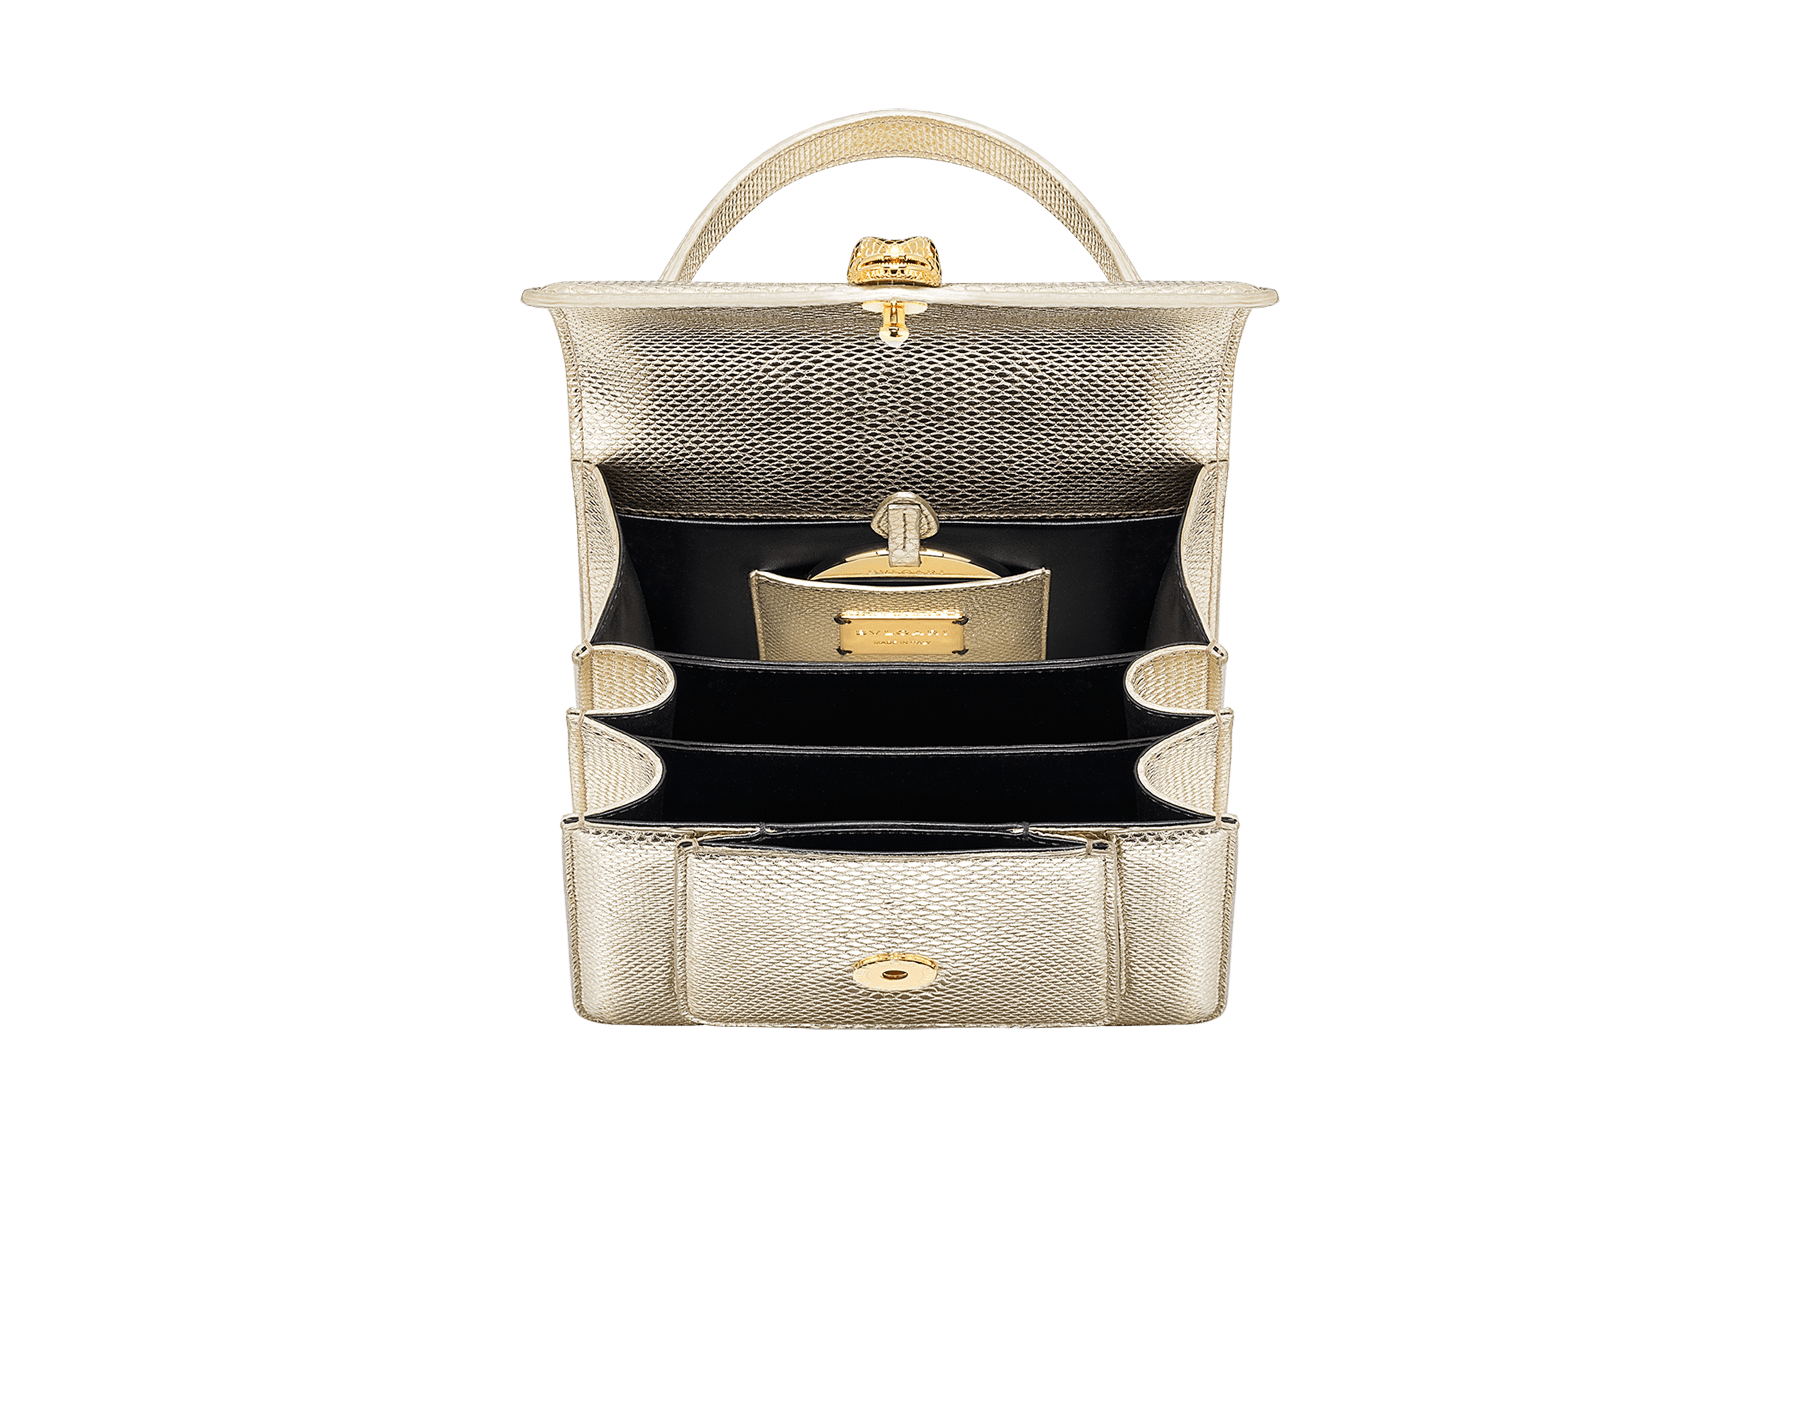 """Serpenti Forever"" small maxi chain top handle bag in peach nappa leather, with Lavander Amethyst lilac nappa leather internal lining. New Serpenti head closure in gold plated brass, finished with small pink mother-of-pearl scales in the middle and red enamel eyes. 1133-MCN image 4"